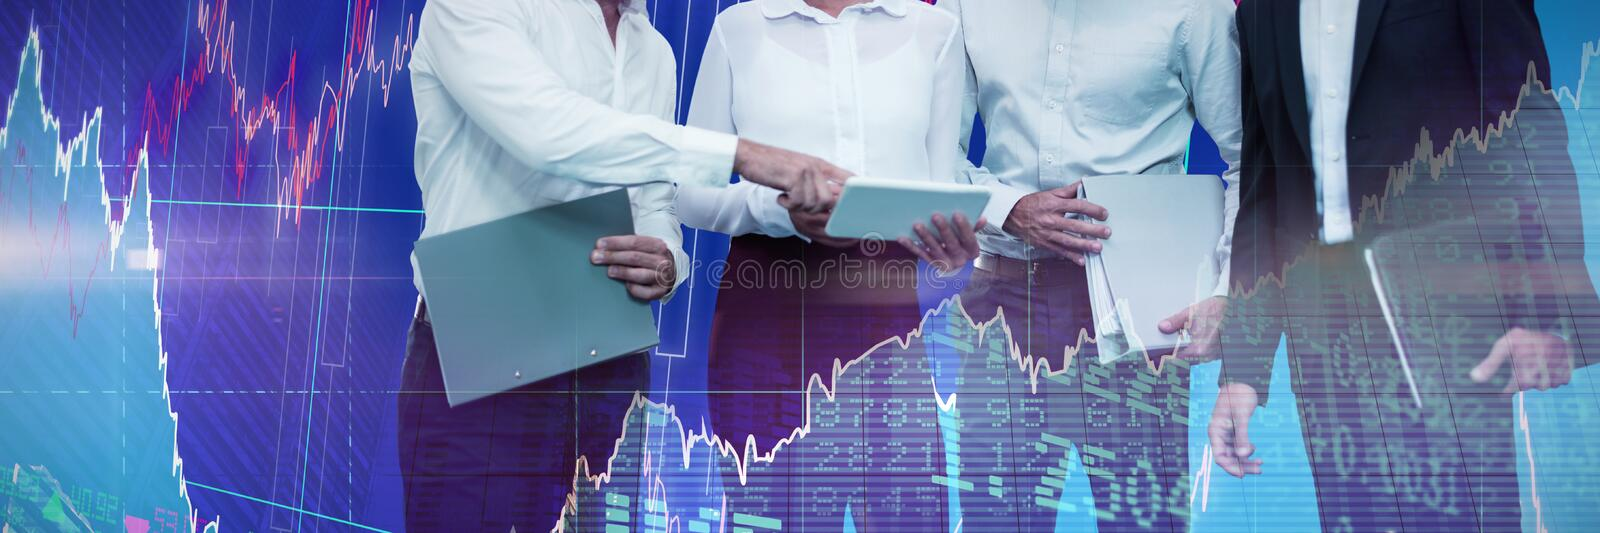 Composite image of business people holding files discussing over tablet royalty free stock image